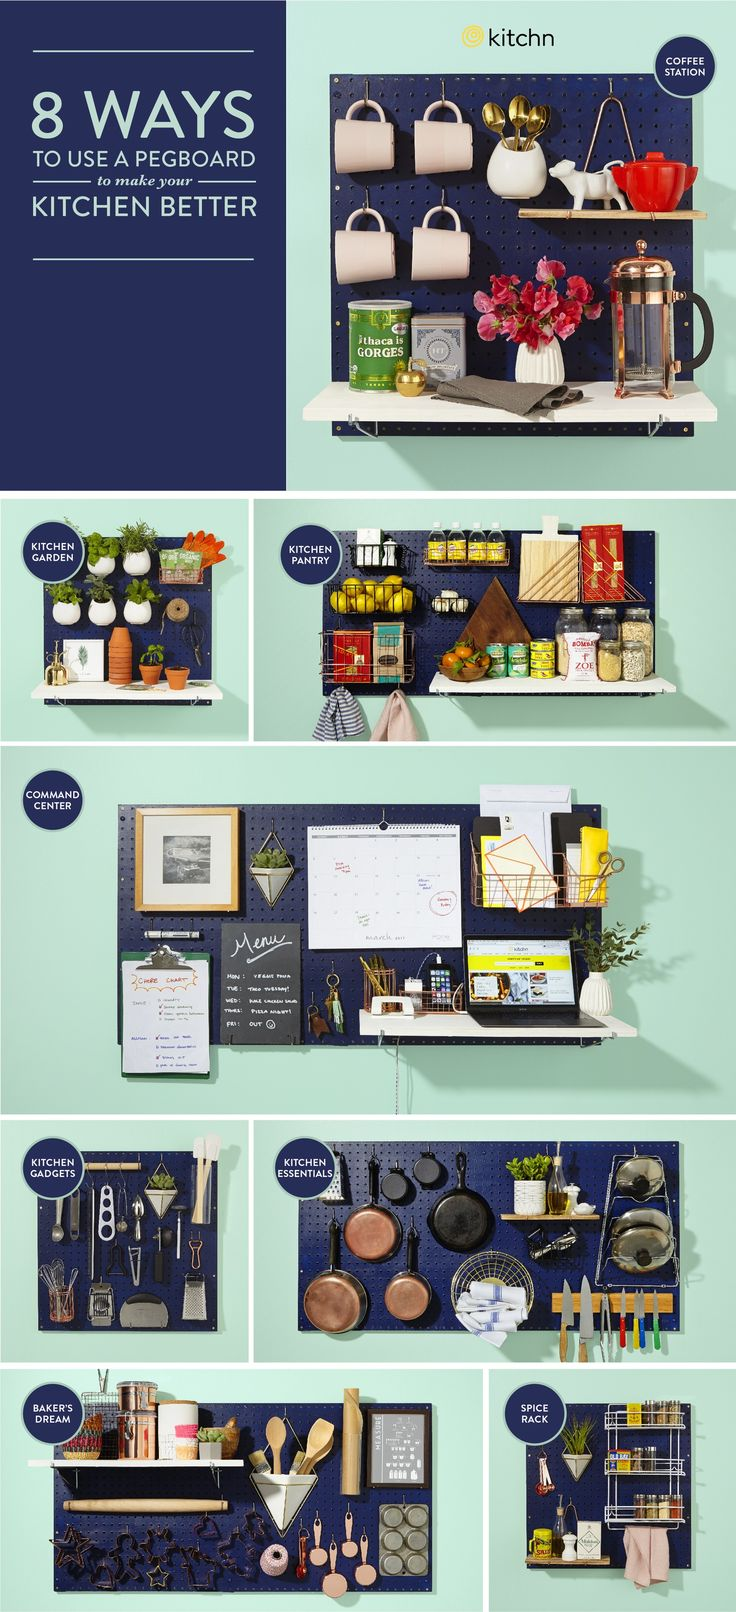 8 Ways to Use a Pegboard to Make Your Kitchen Better   Kitchen organizing ideas  home organization